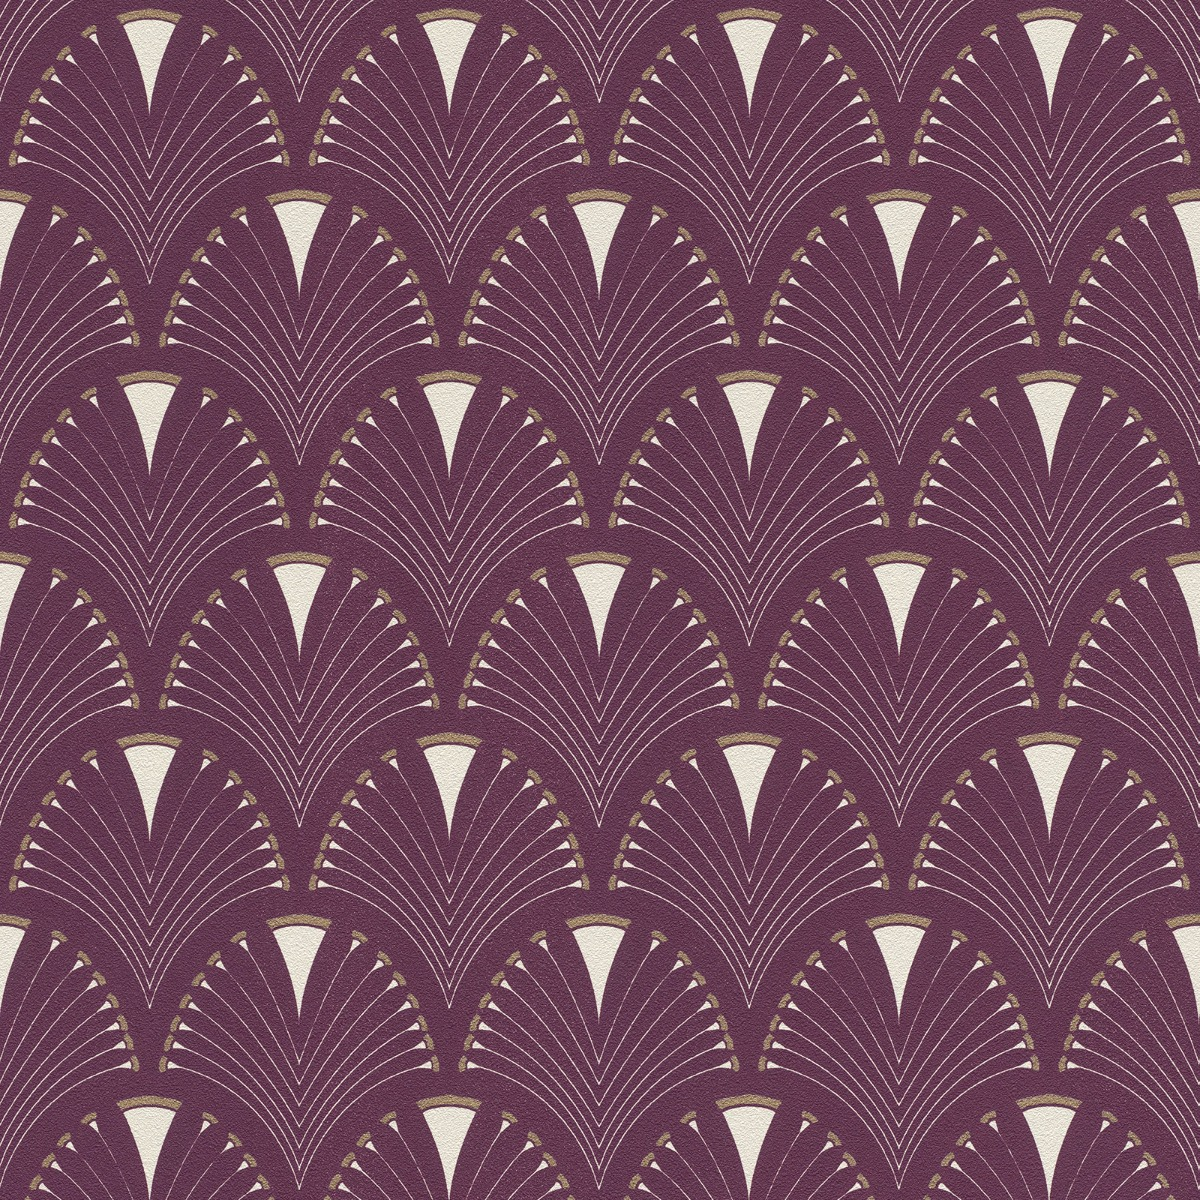 Modern Art Art Deco Fan Wallpaper Plum / Gold Rasch 433241